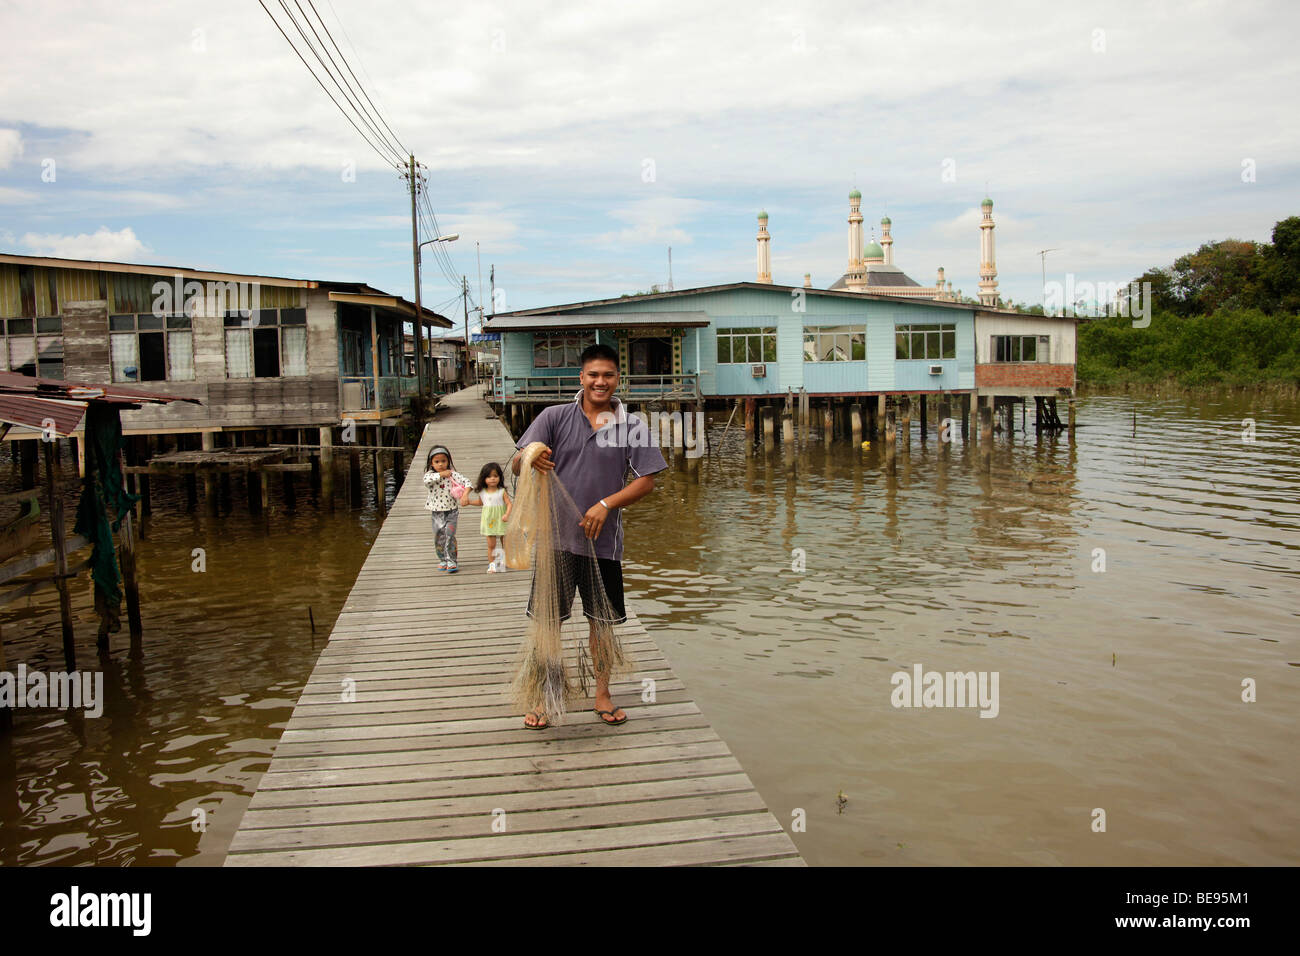 Fishermen in a village built on stilts, Kampong Ayer, Water Village, a district of the capital city, Bandar Seri - Stock Image